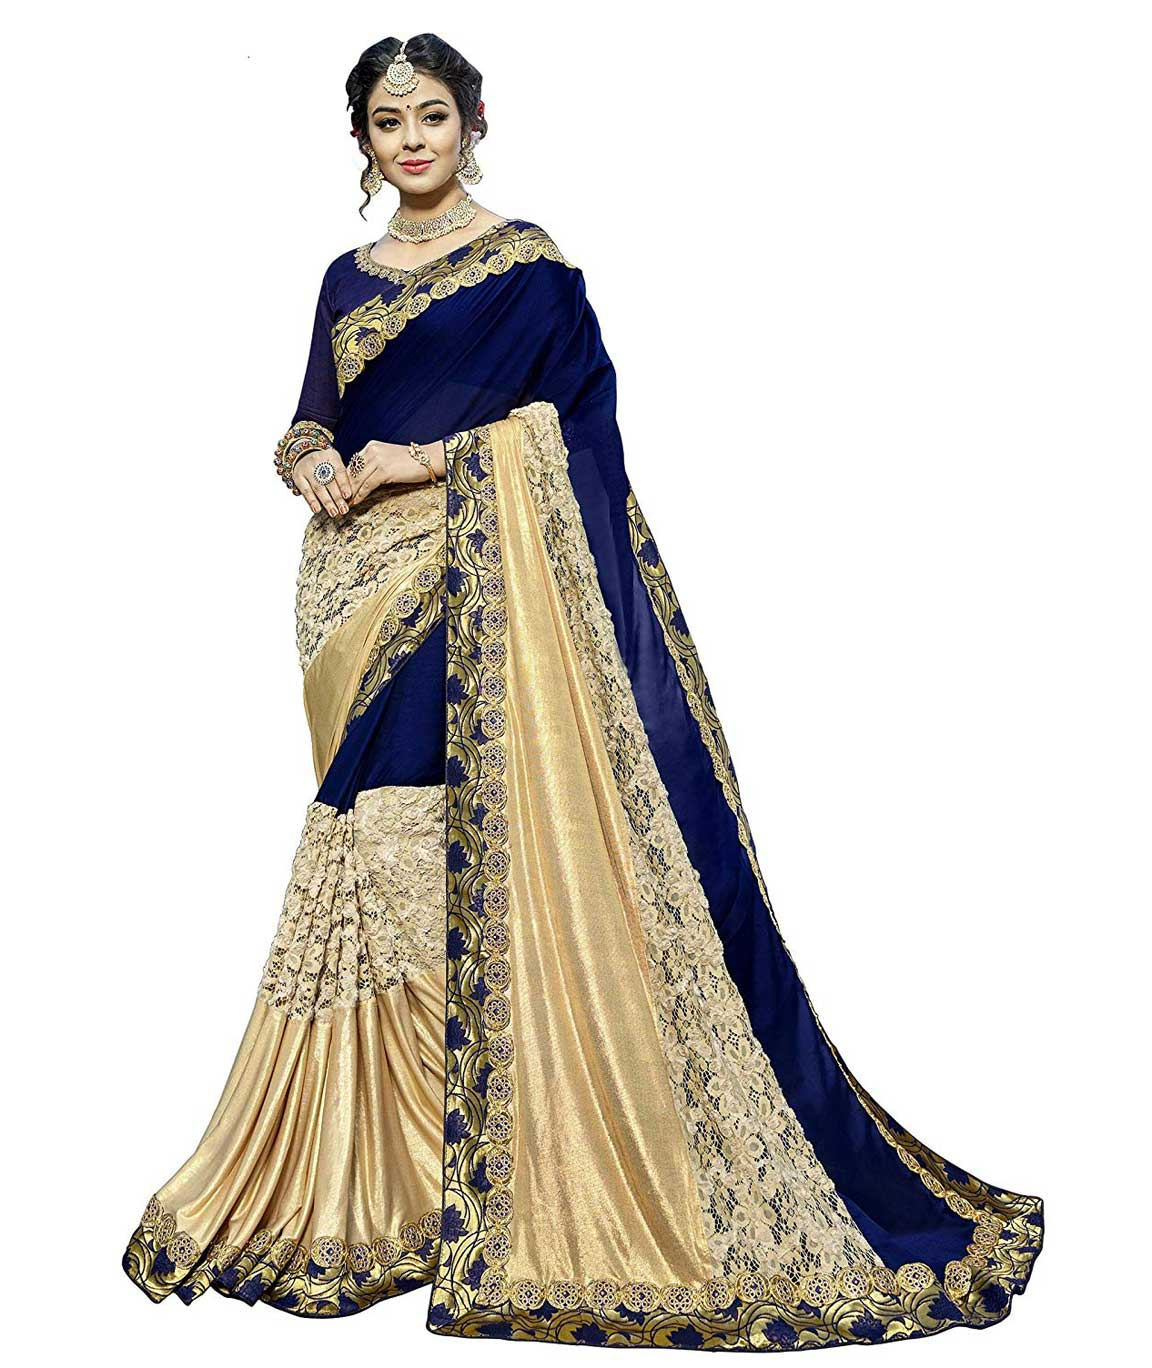 Shangrila Designer Blue Color Heavy Embroidered Fancy Fabric Saree With Unstitched Blouse Piece (Blue)